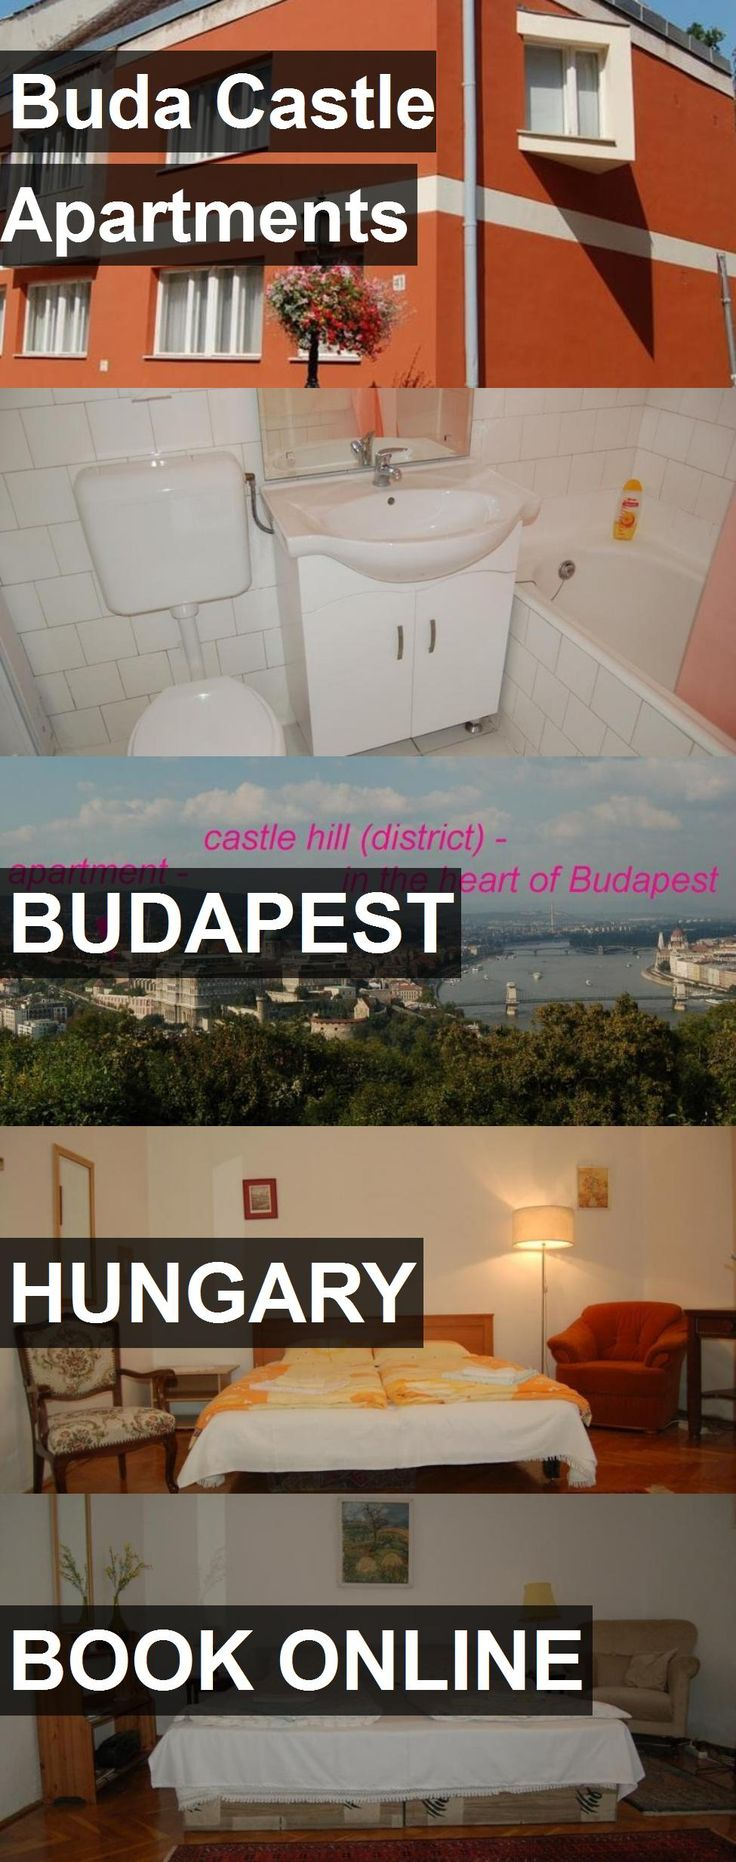 Hotel Buda Castle Apartments in Budapest, Hungary. For more information, photos, reviews and best prices please follow the link. #Hungary #Budapest #BudaCastleApartments #hotel #travel #vacation